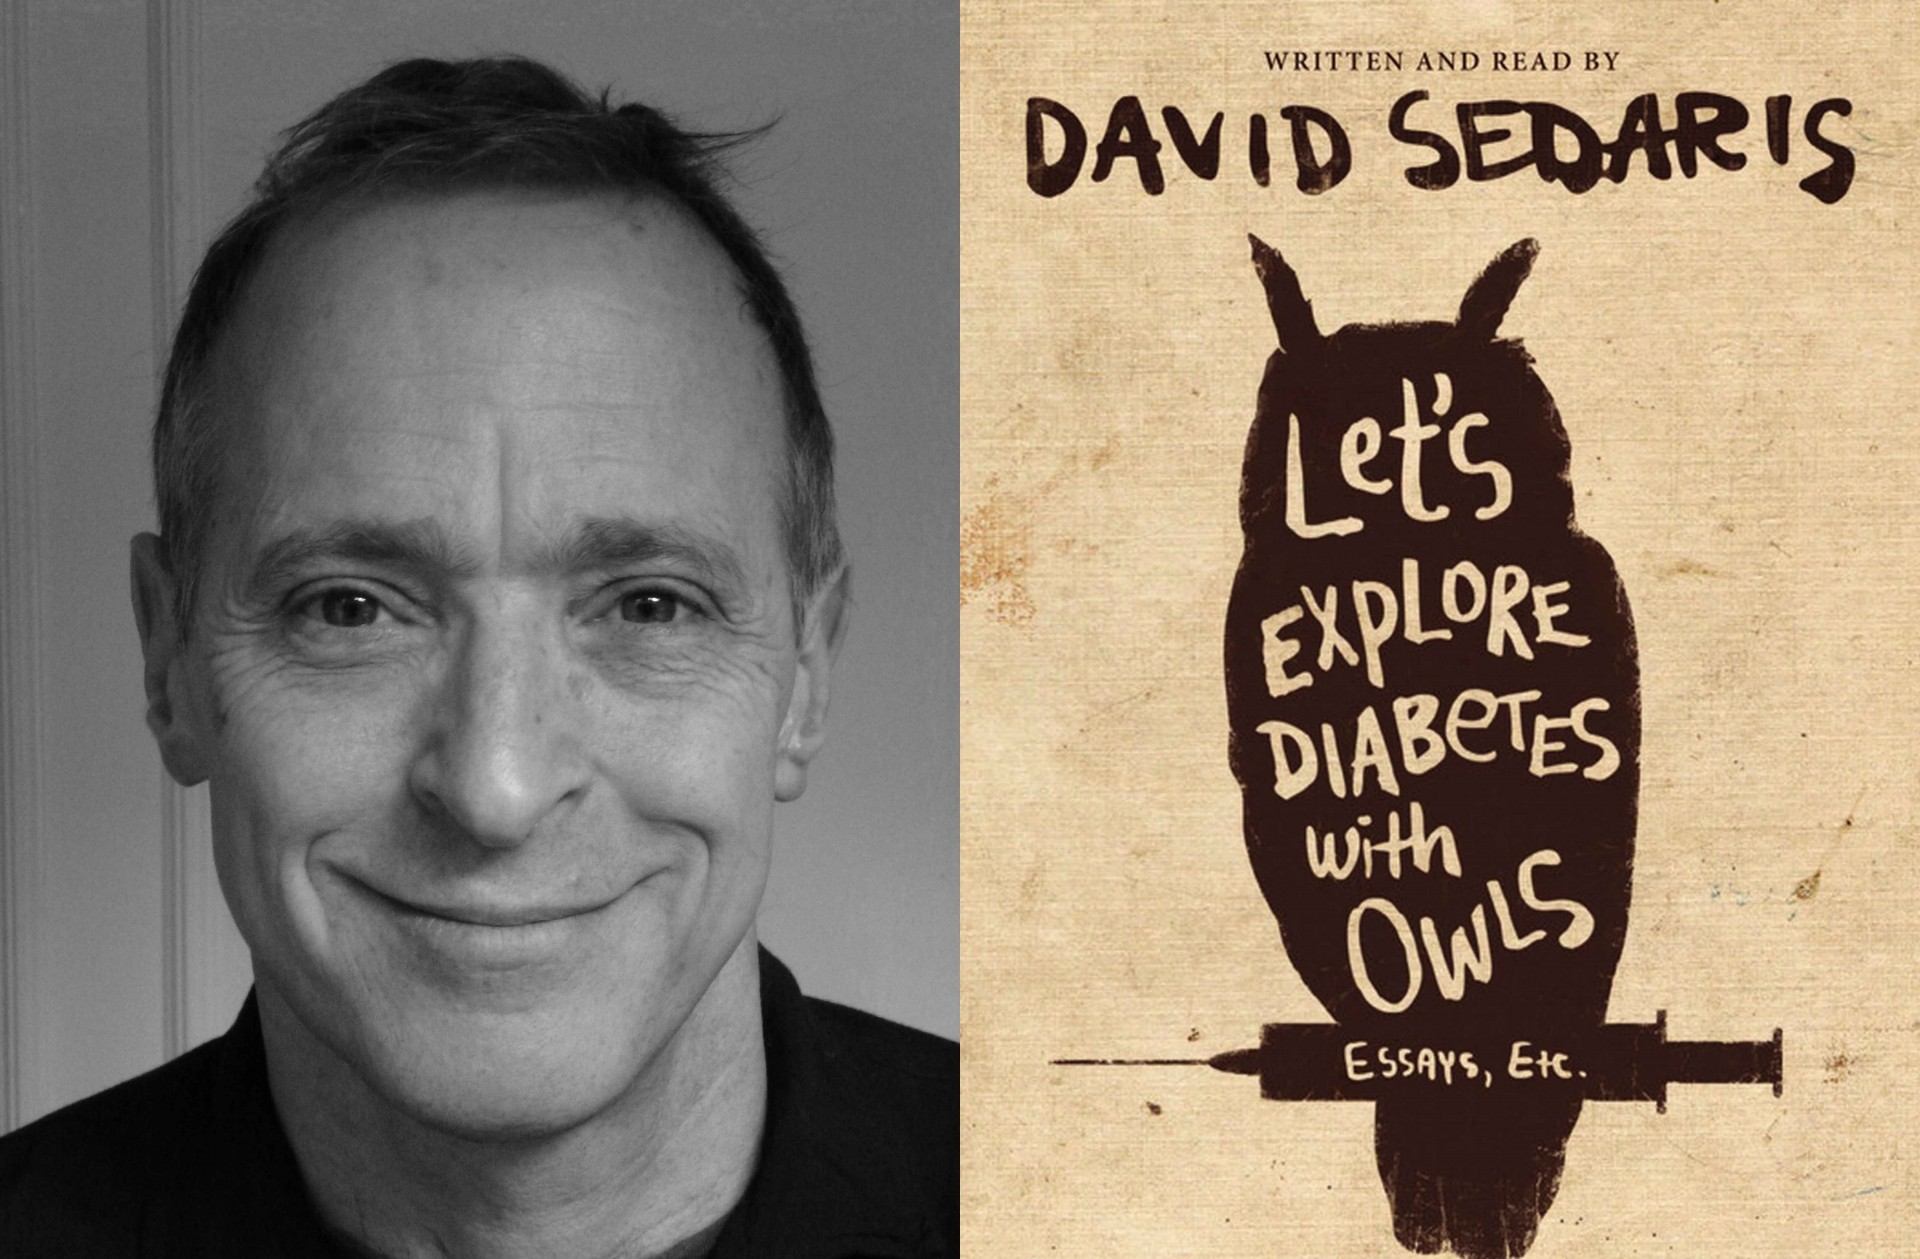 004 Essay Example Sedarisduo David Sedaris Fascinating Essays New Yorker Calypso 1920